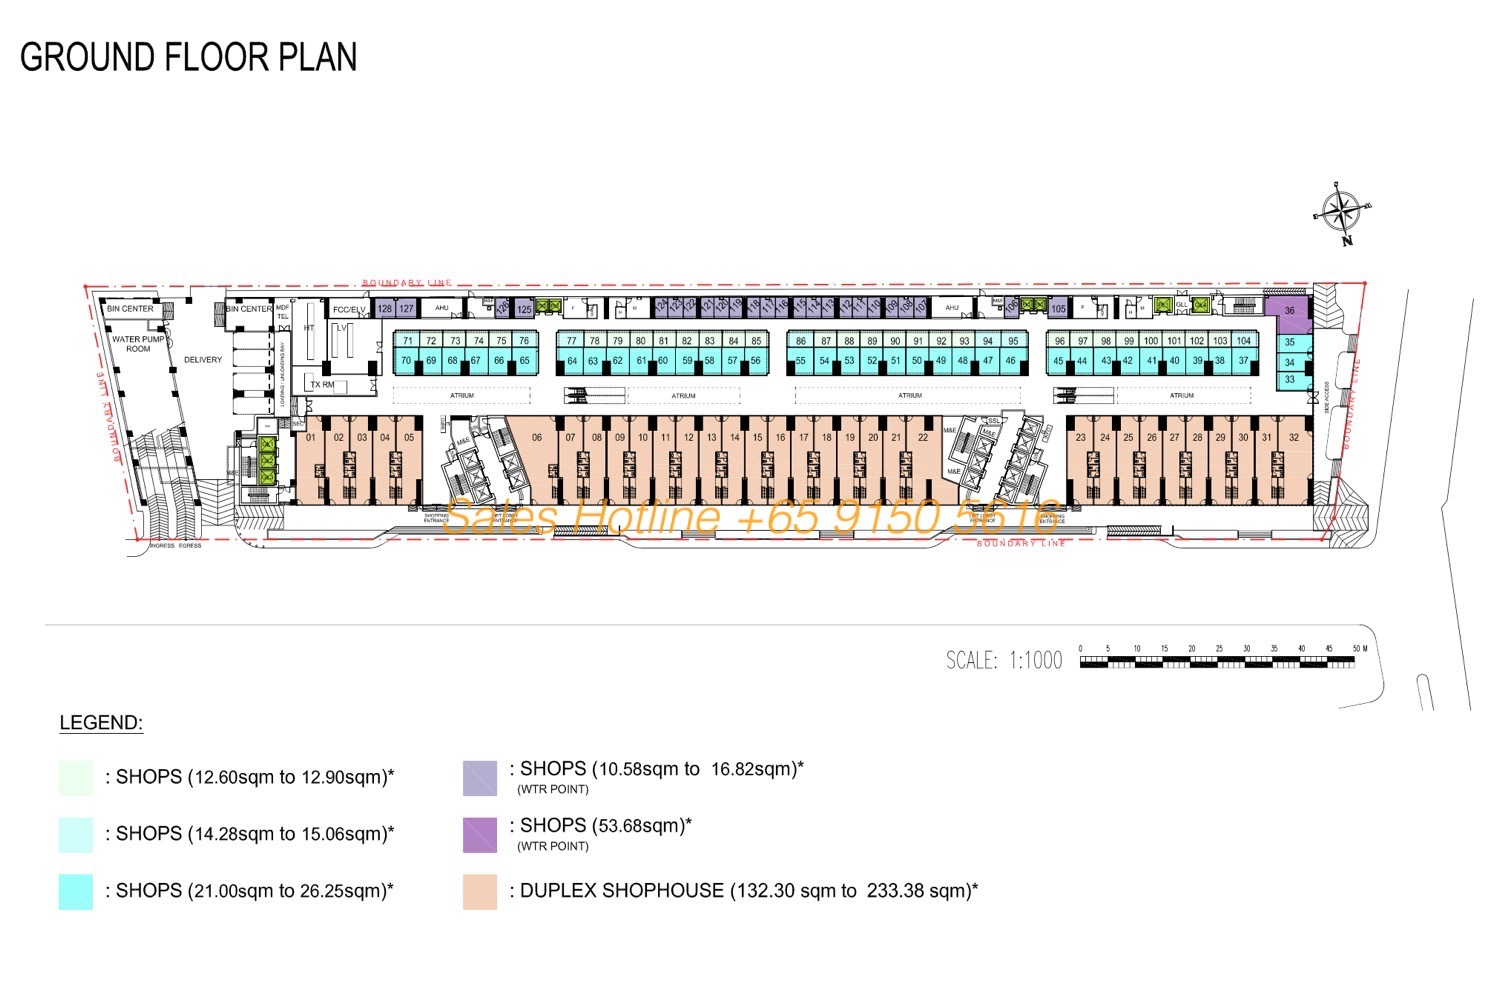 The Bridge Camobodia - Retail Site Plan Ground Floor